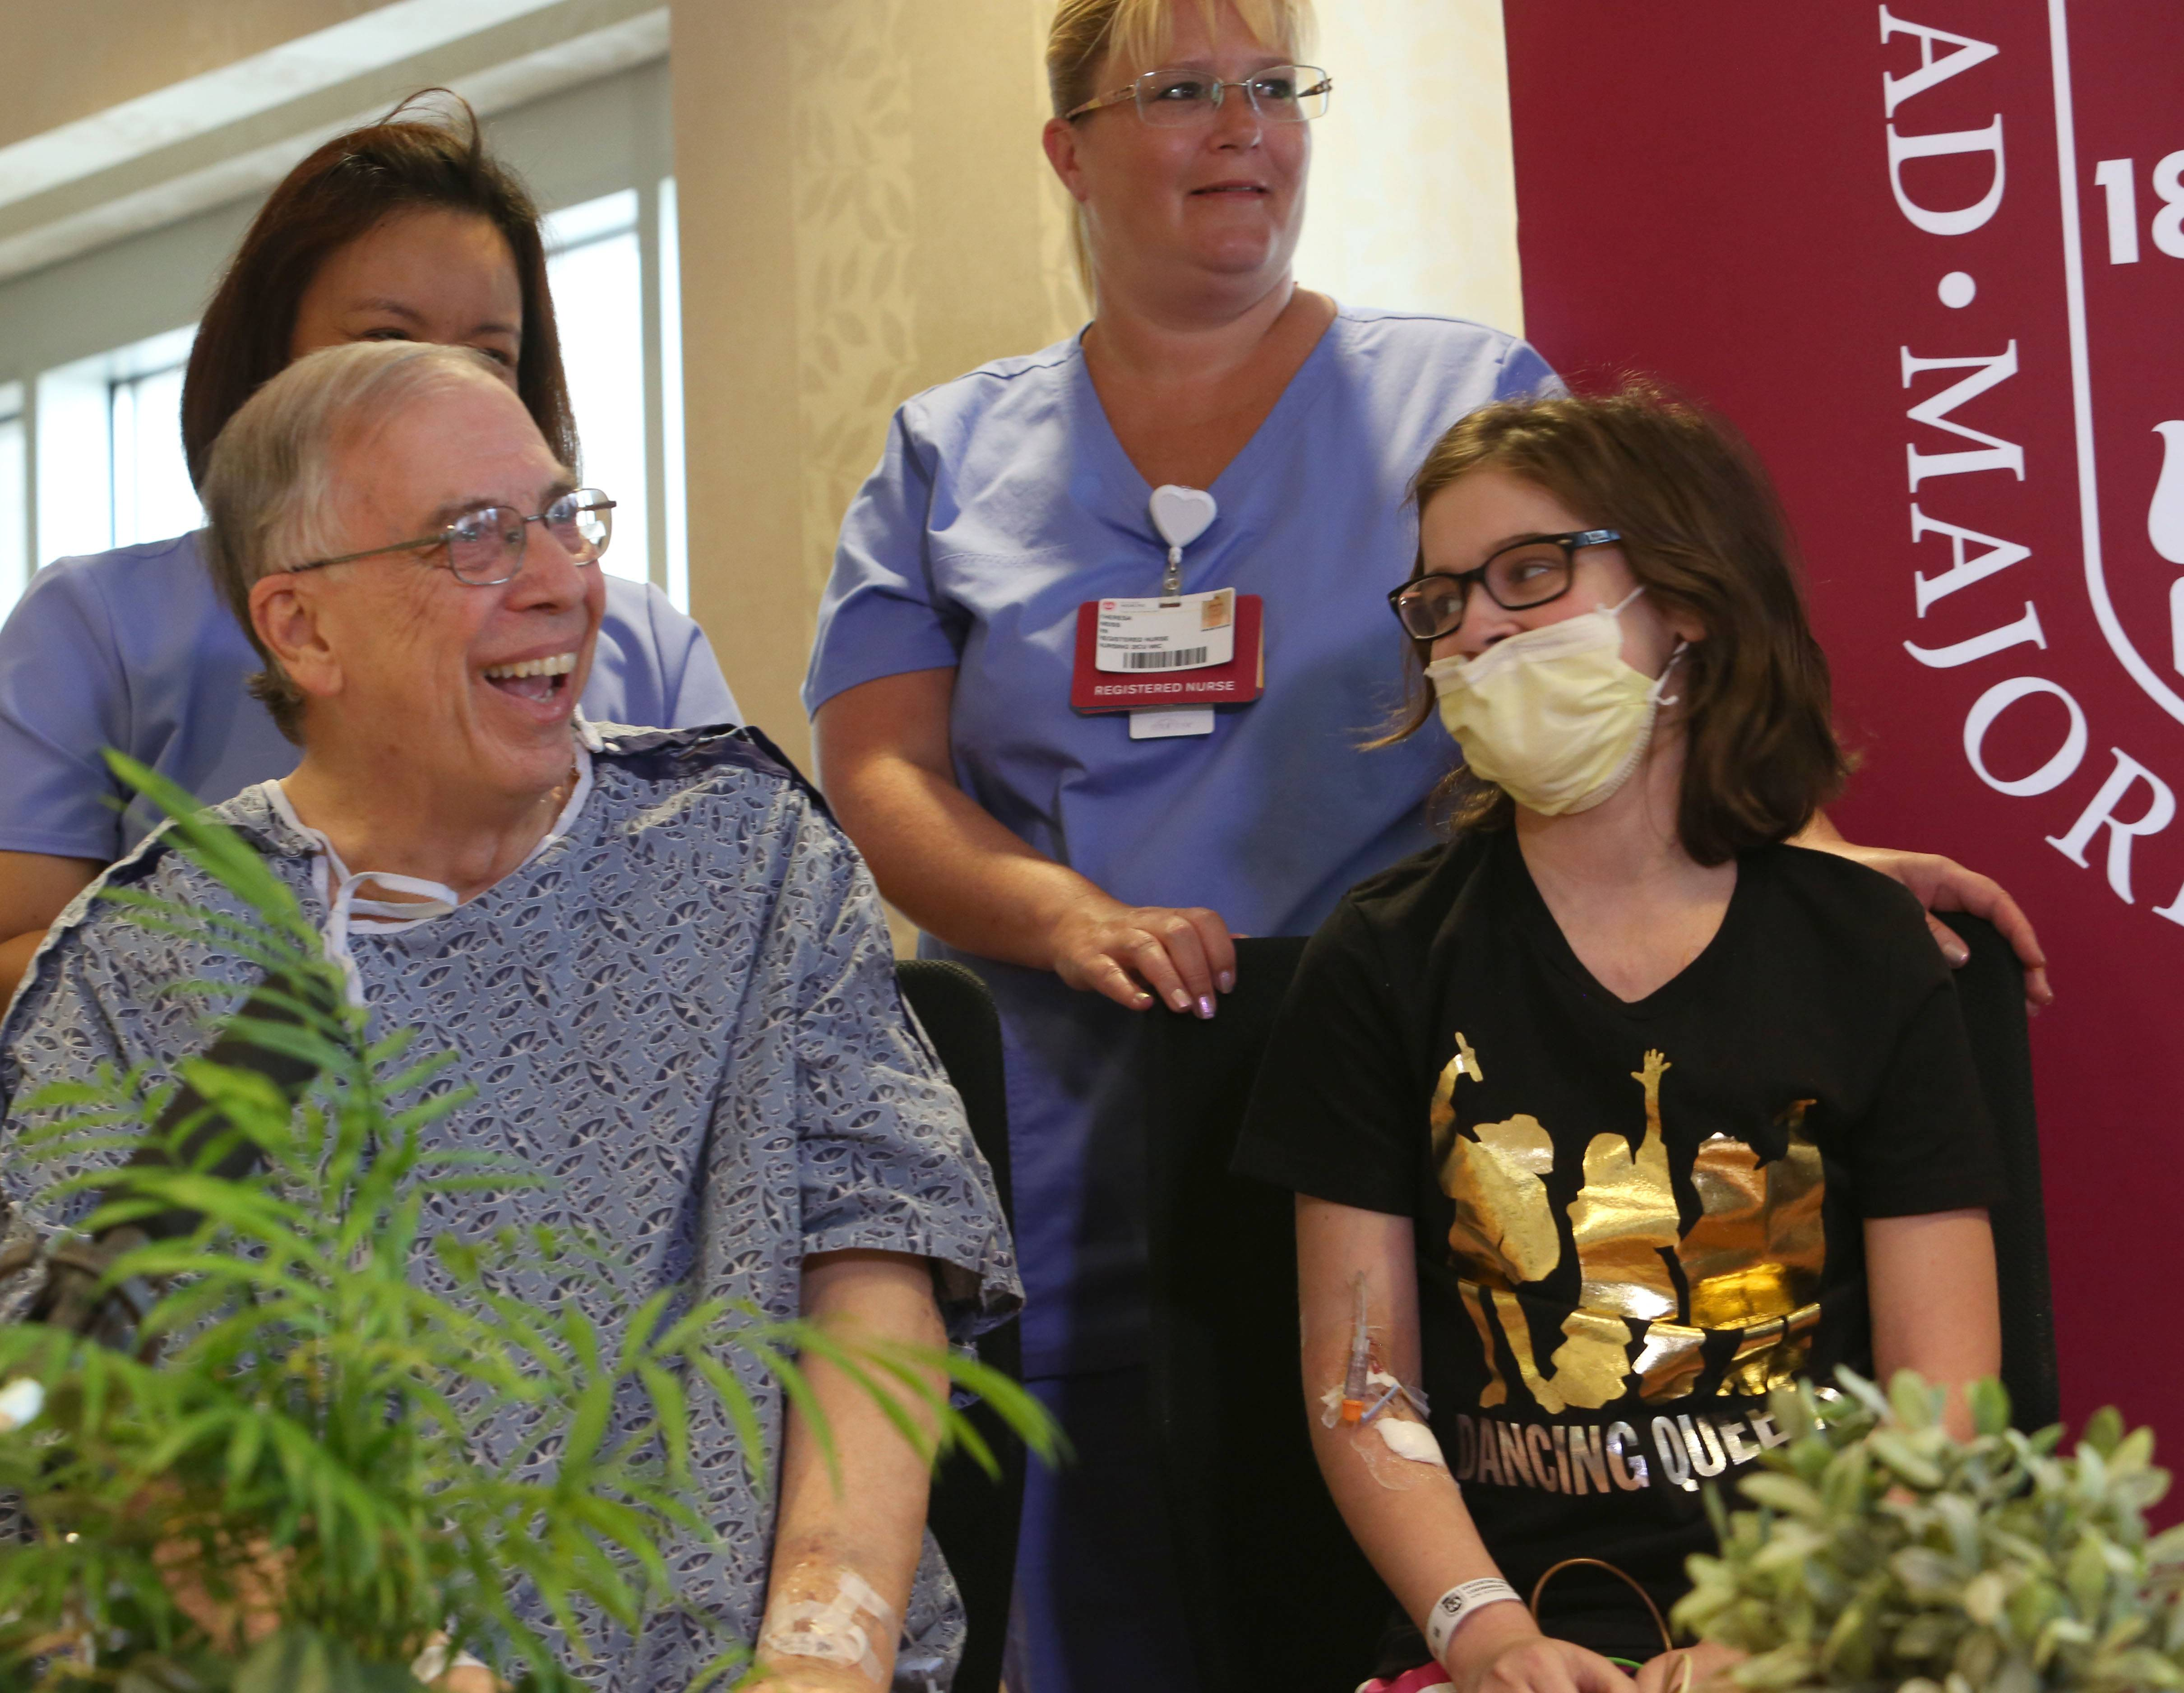 Robert Senander of Winfield and Julie D'Agostino of Elmhurst were two of five patients to receive lung transplants during a roughly 24-hour period at Loyola University Medical Center in Maywood.